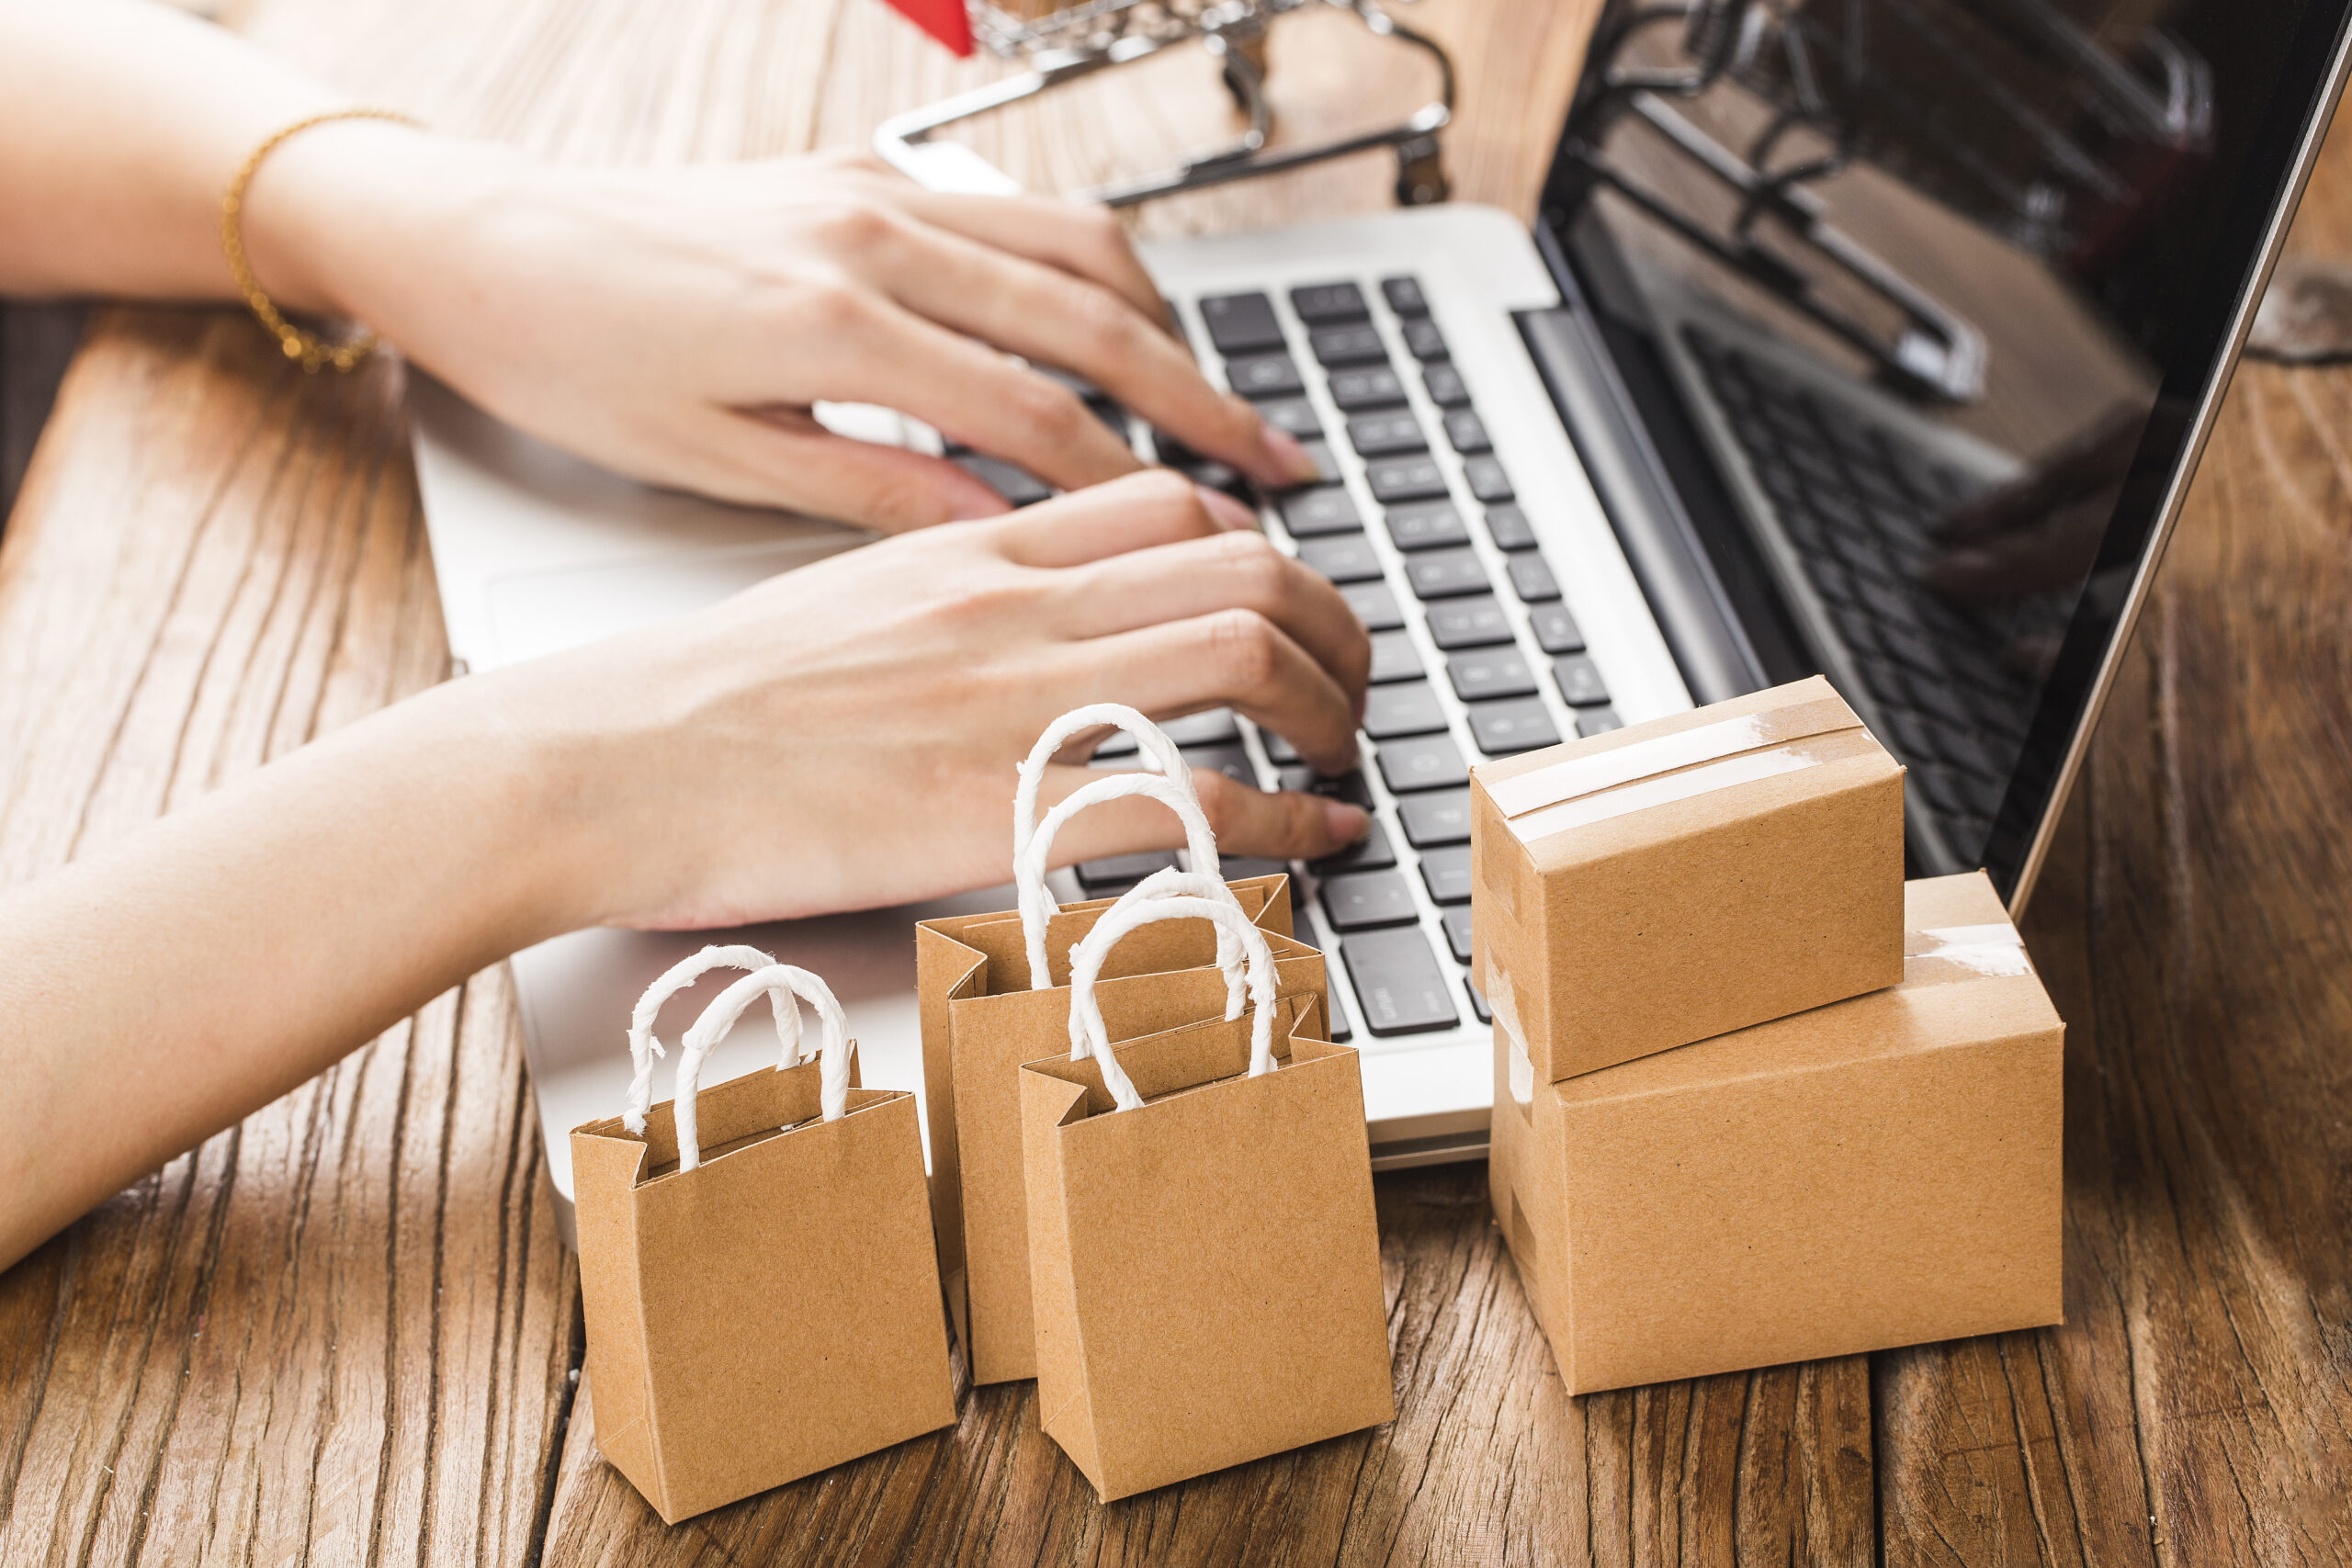 shopping online at home concept.Cartons in a shopping cart on a